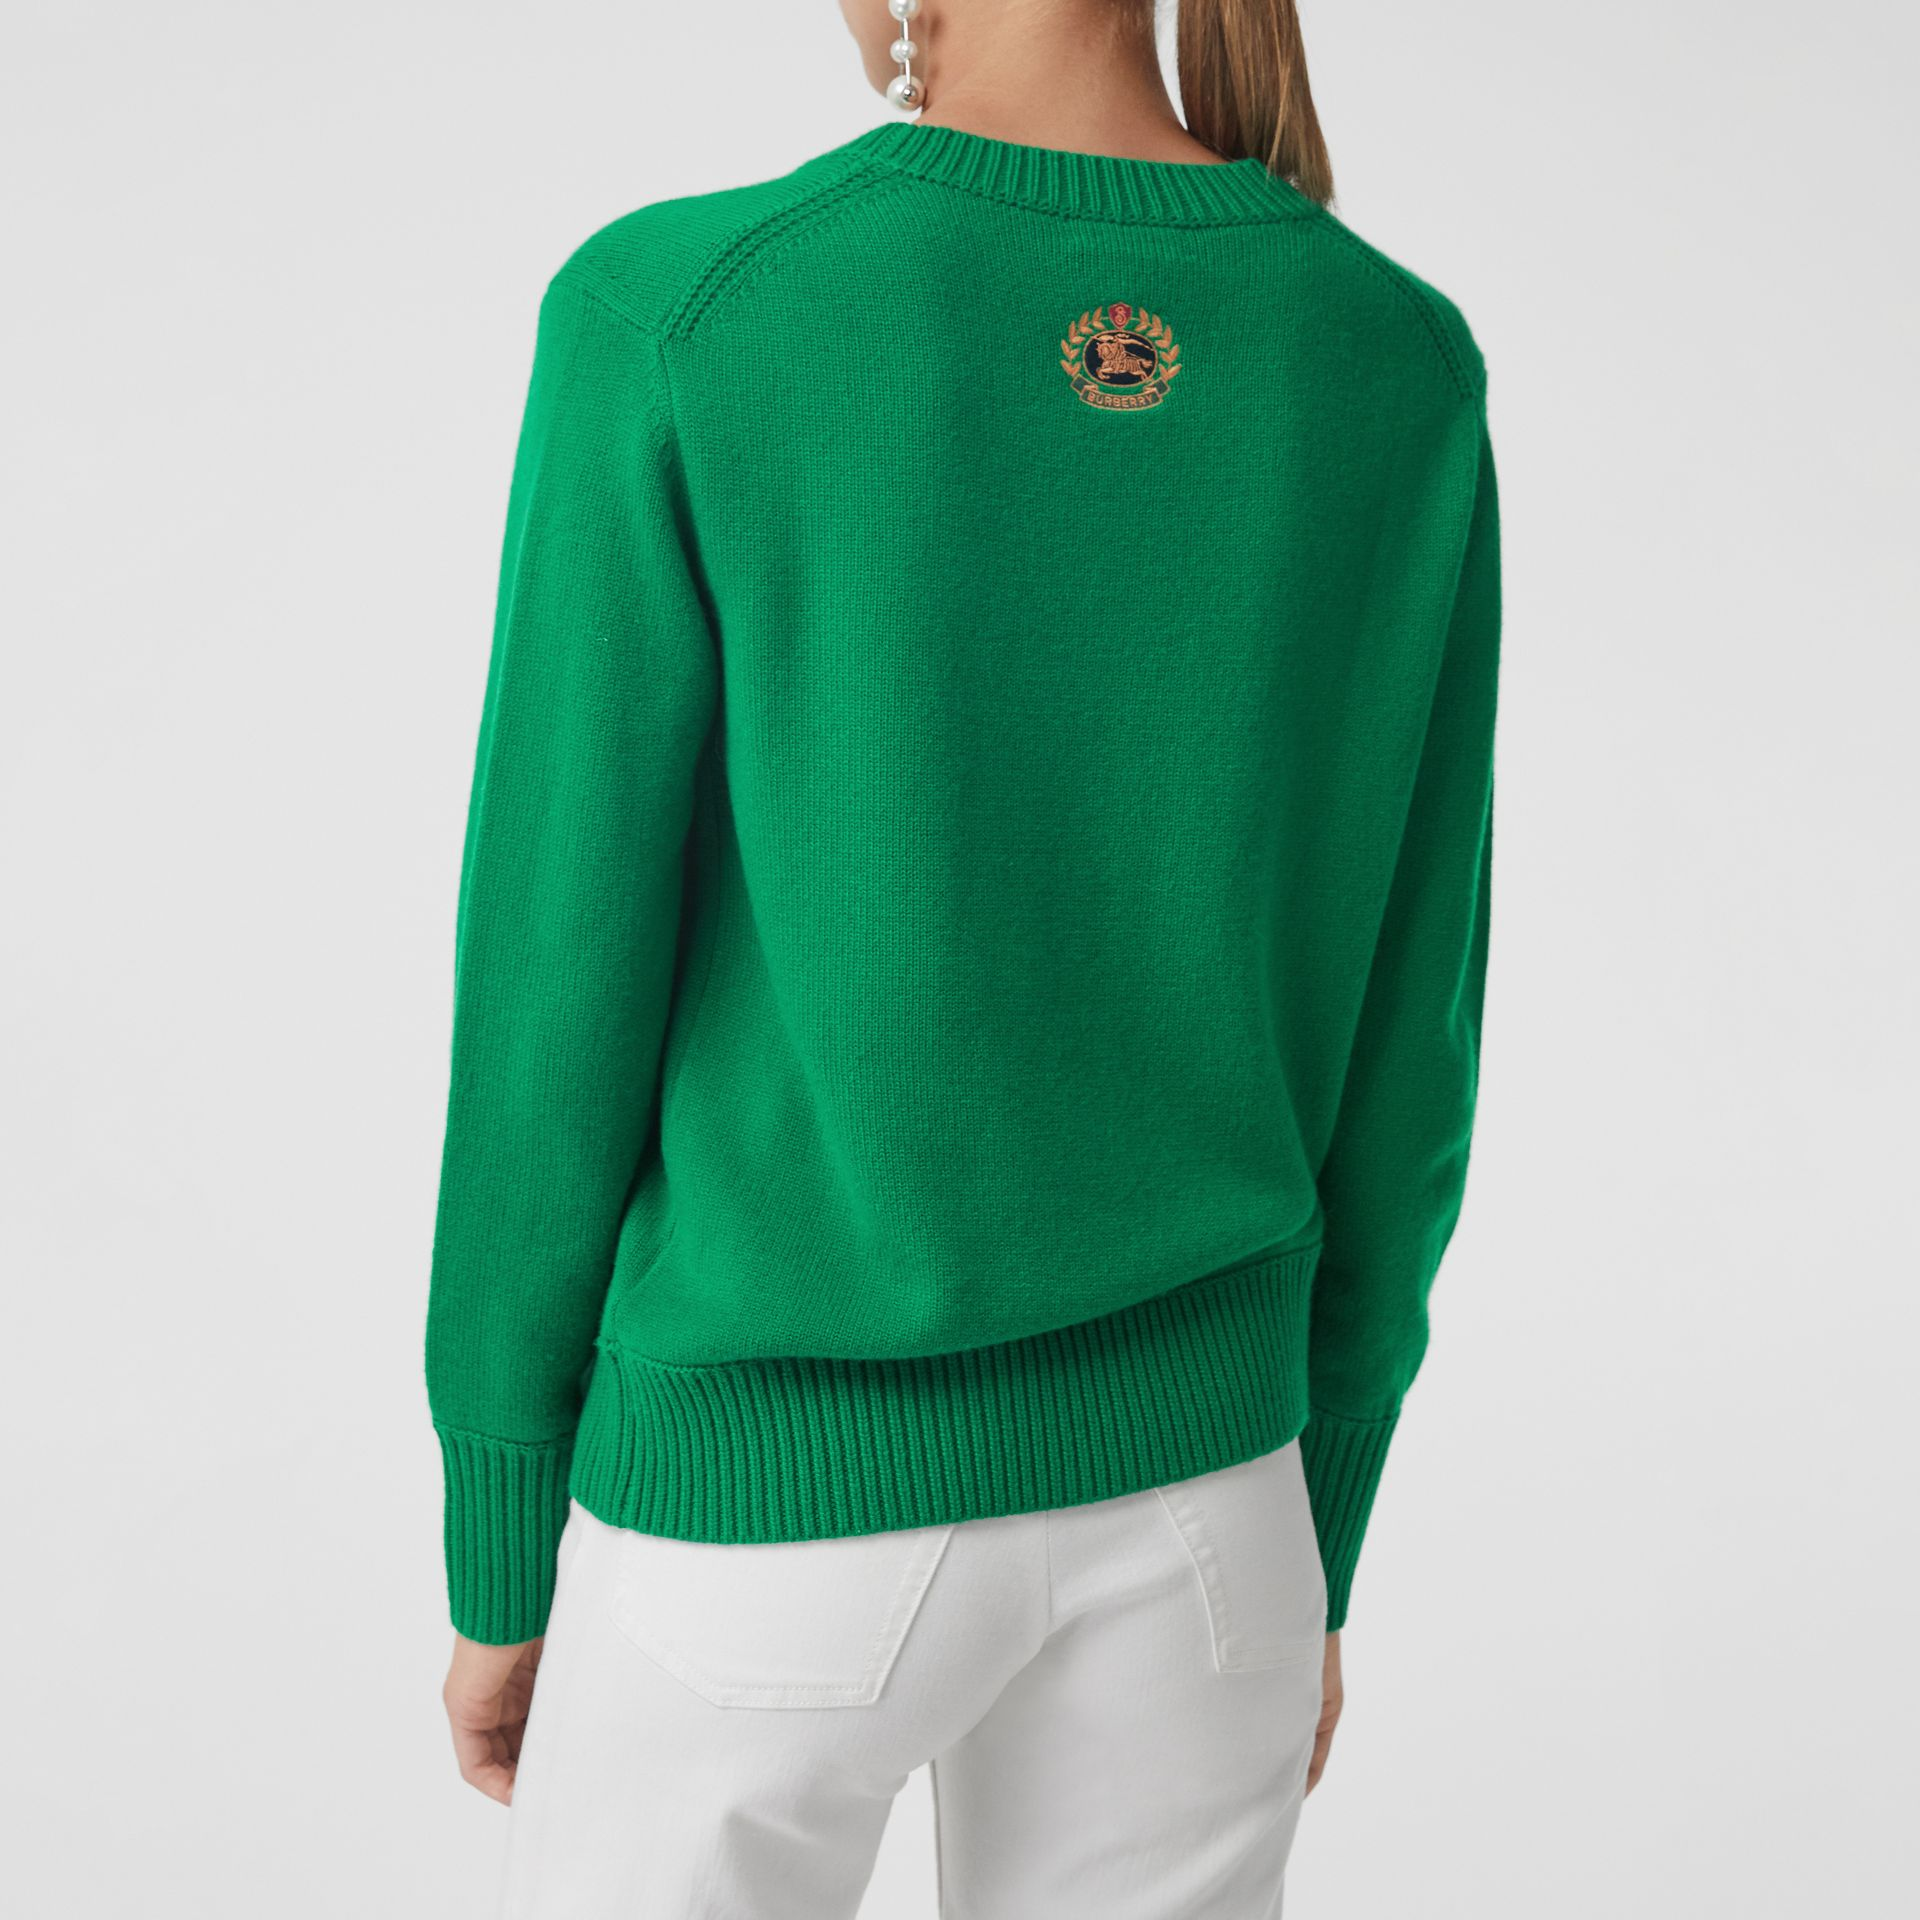 Archive Logo Appliqué Cashmere Sweater in Vibrant Green - Women | Burberry Australia - gallery image 2